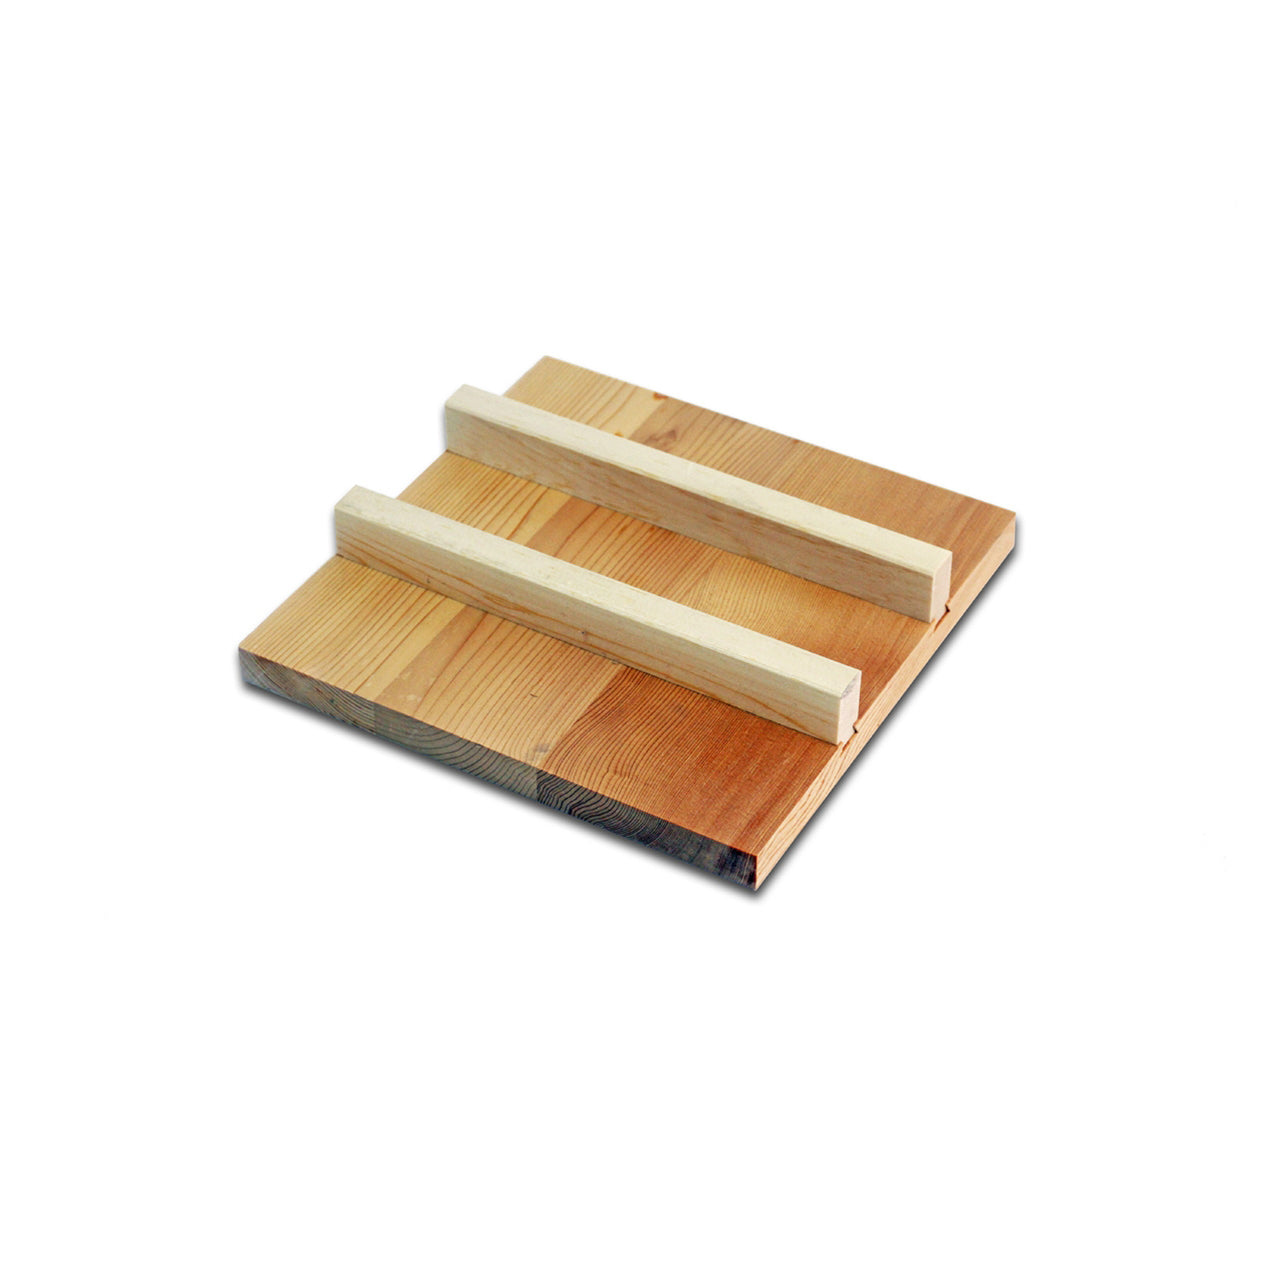 "Lid for Tamagoyaki Omelette Pan (8.5"" x 8.5""). A wooden lid for SKU: 91366 Copper Tamagoyaki Omelette Pan Medium."